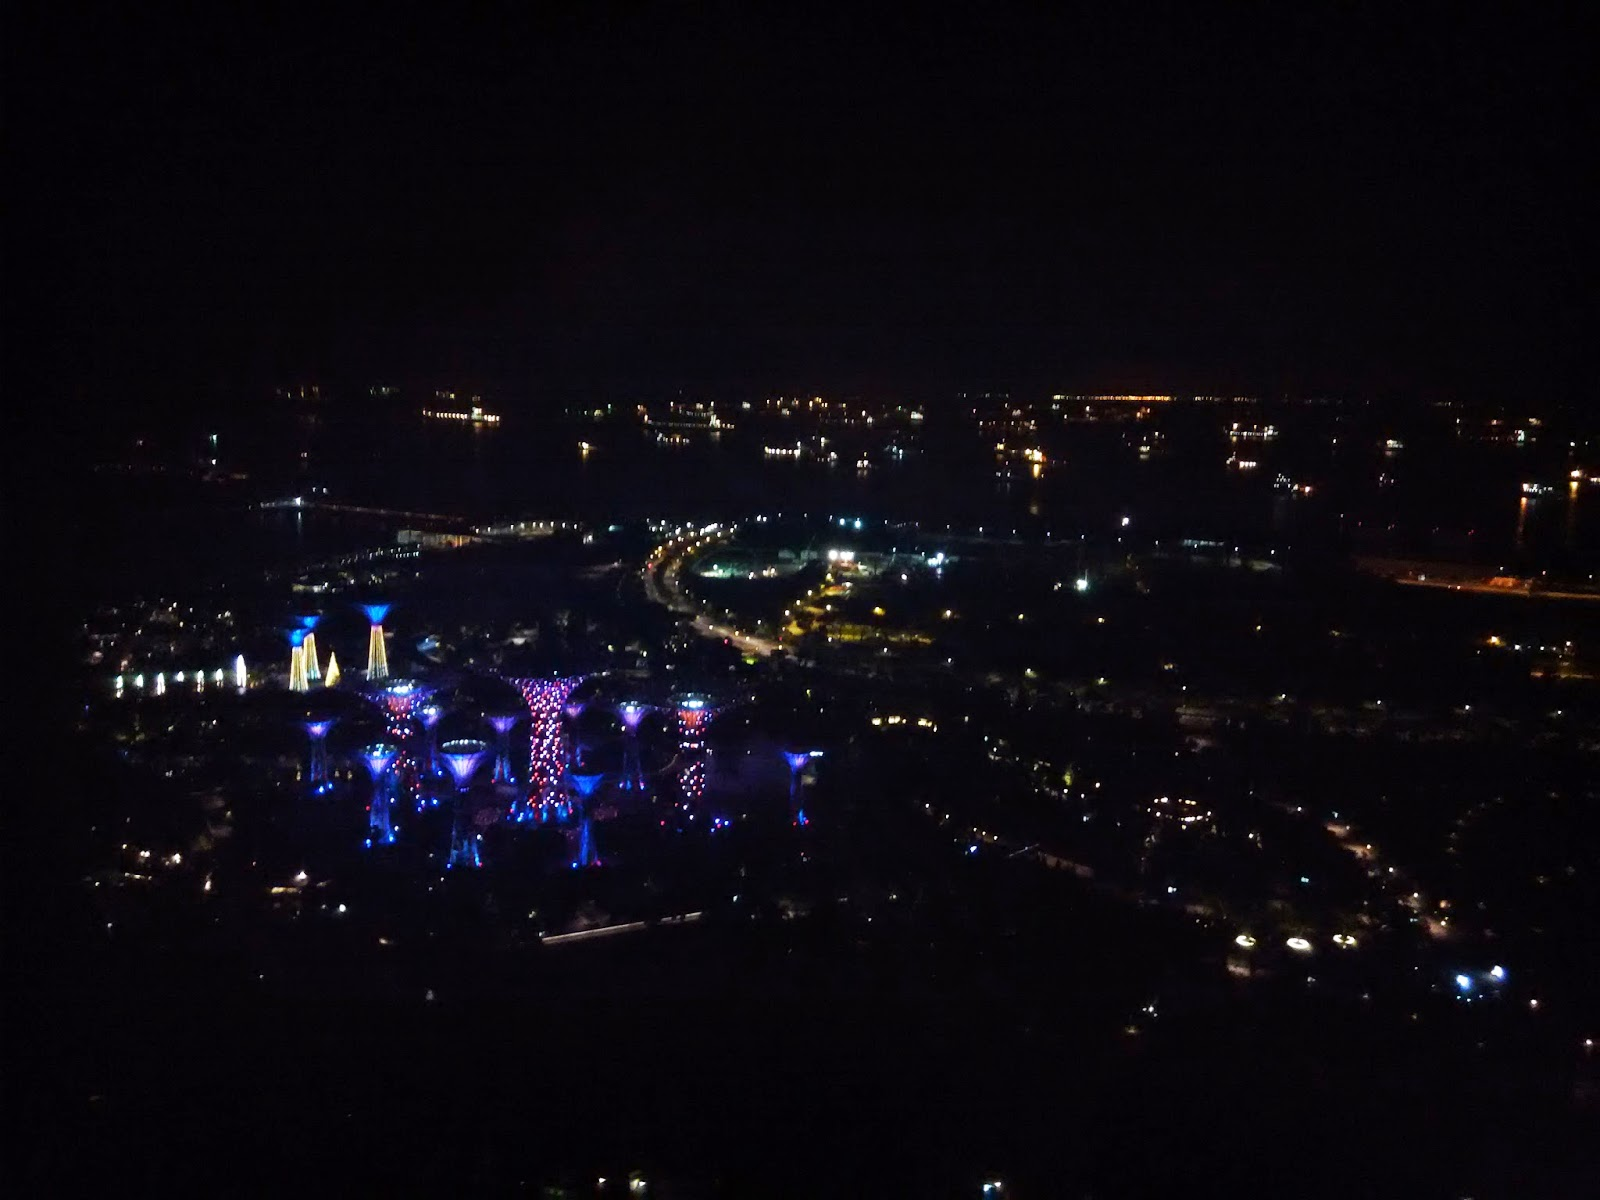 can see the light show at the garden by the bay